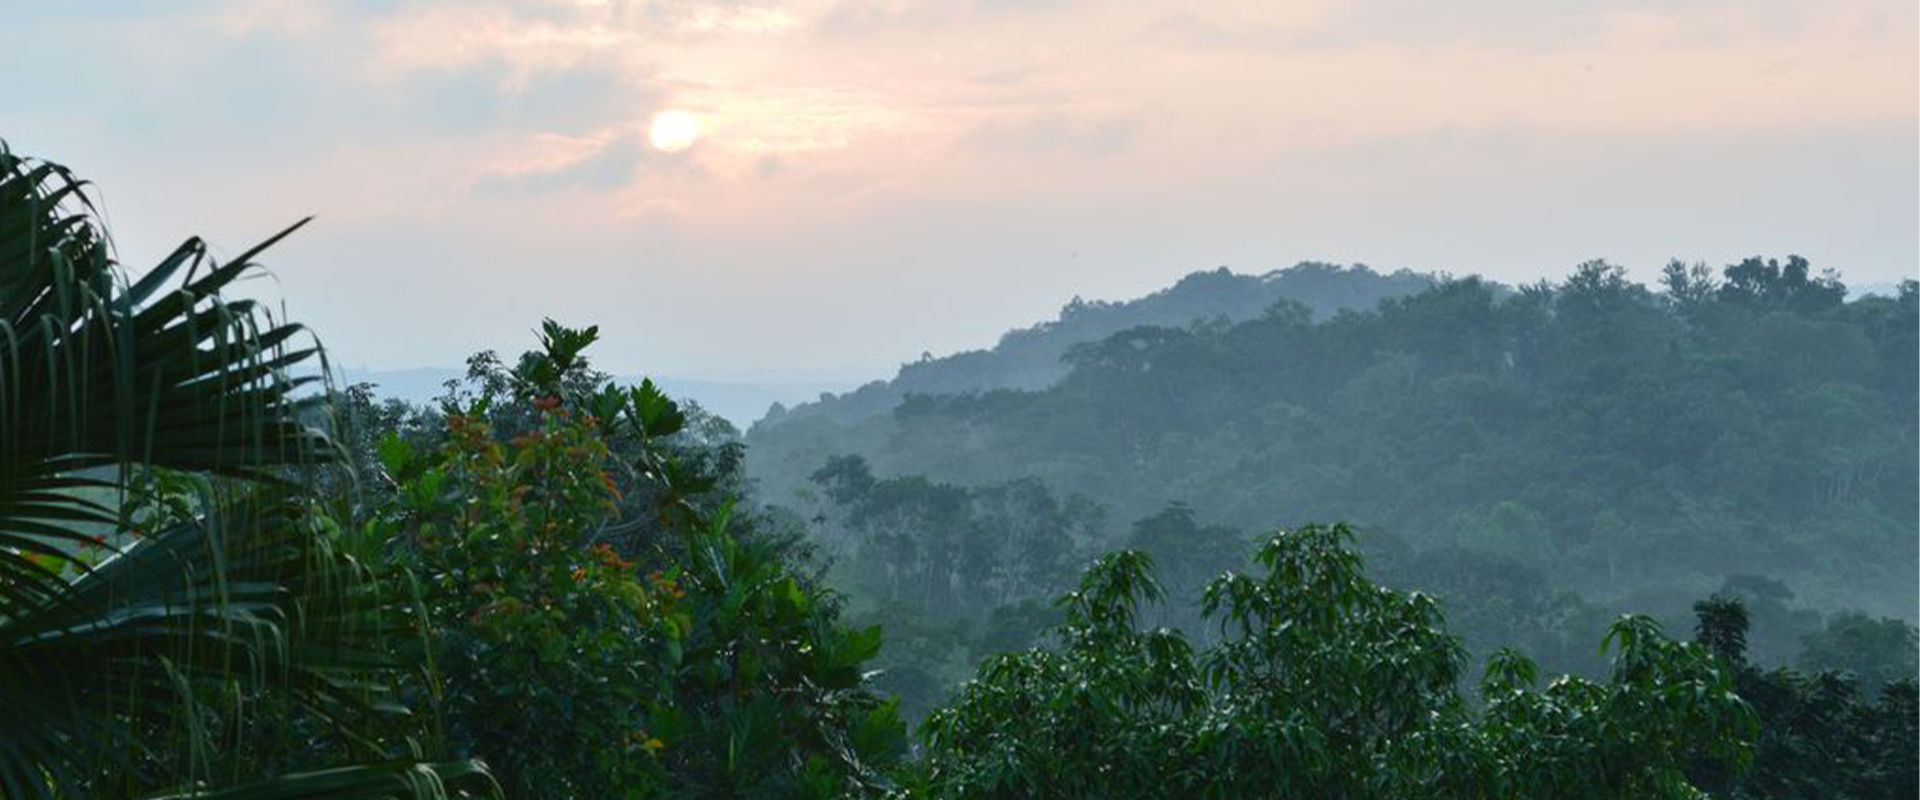 Adventure & Tranquility in the Rainforest